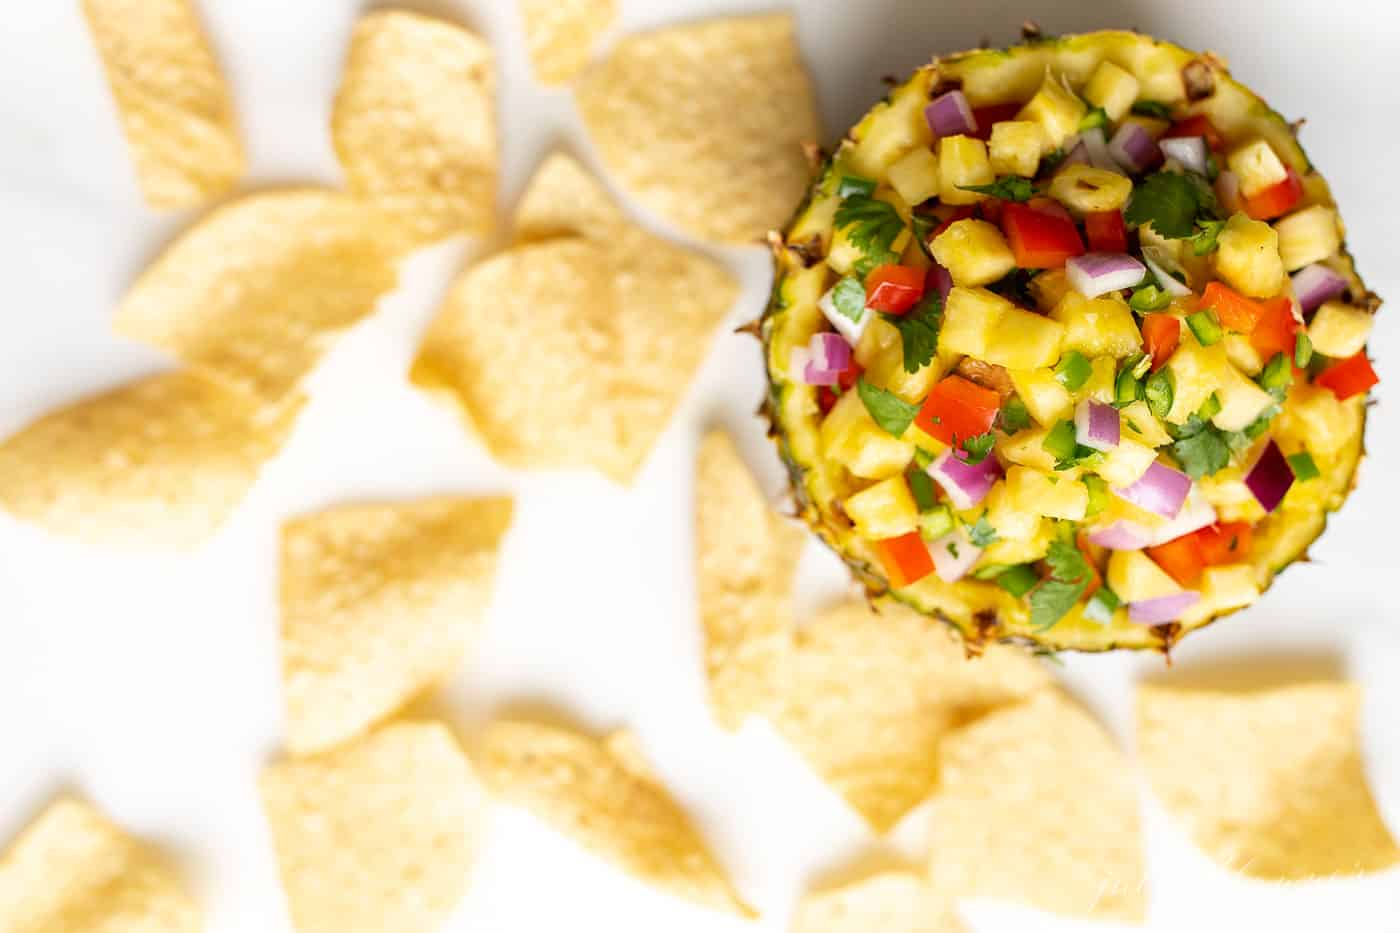 Pineapple salsa in a pineapple bowl, surrounded by tortilla chips.